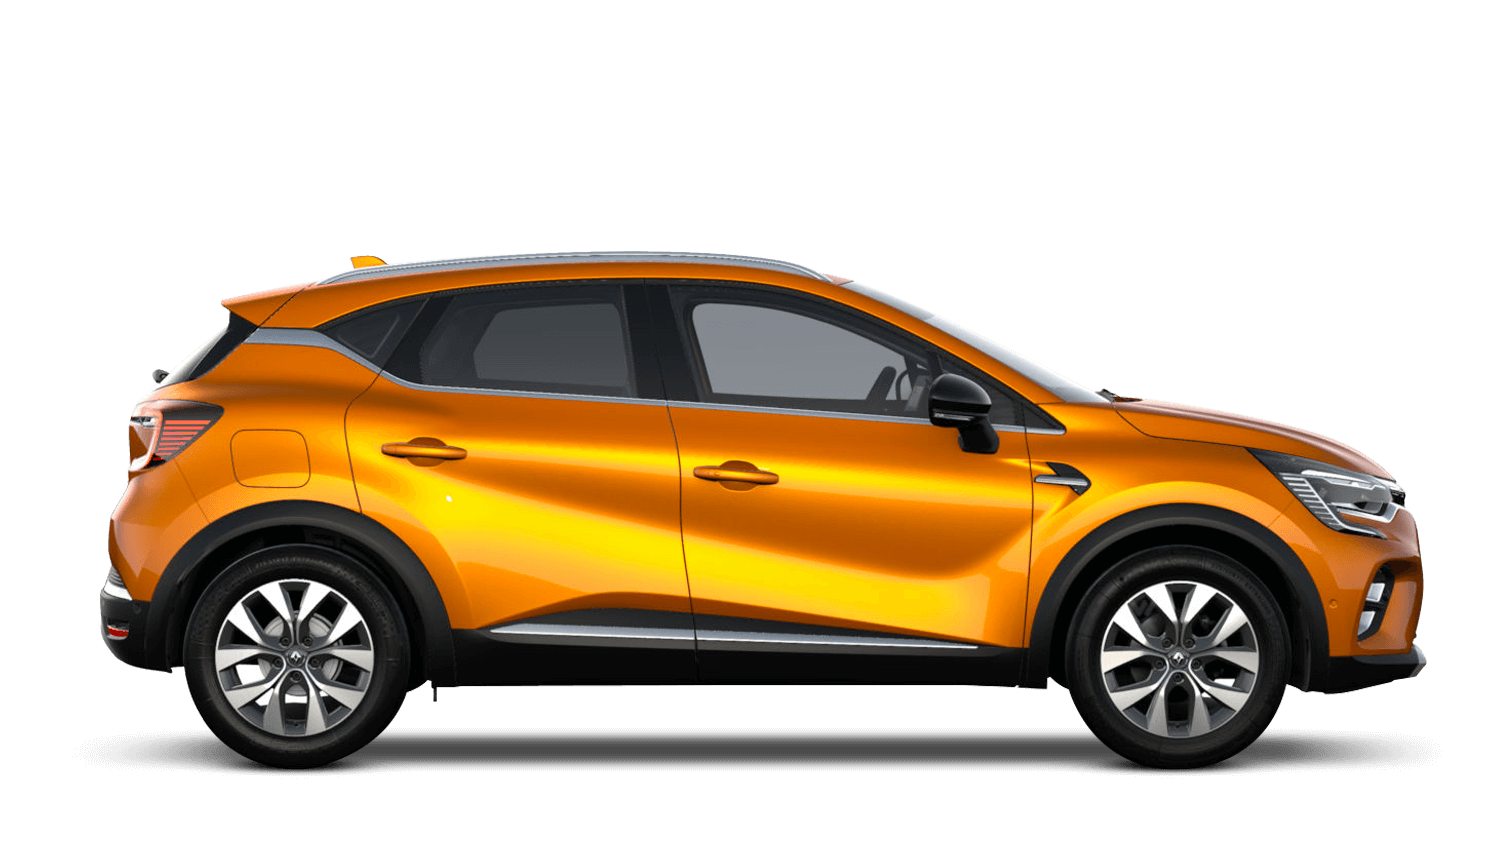 Desert Orange All-New Renault CAPTUR